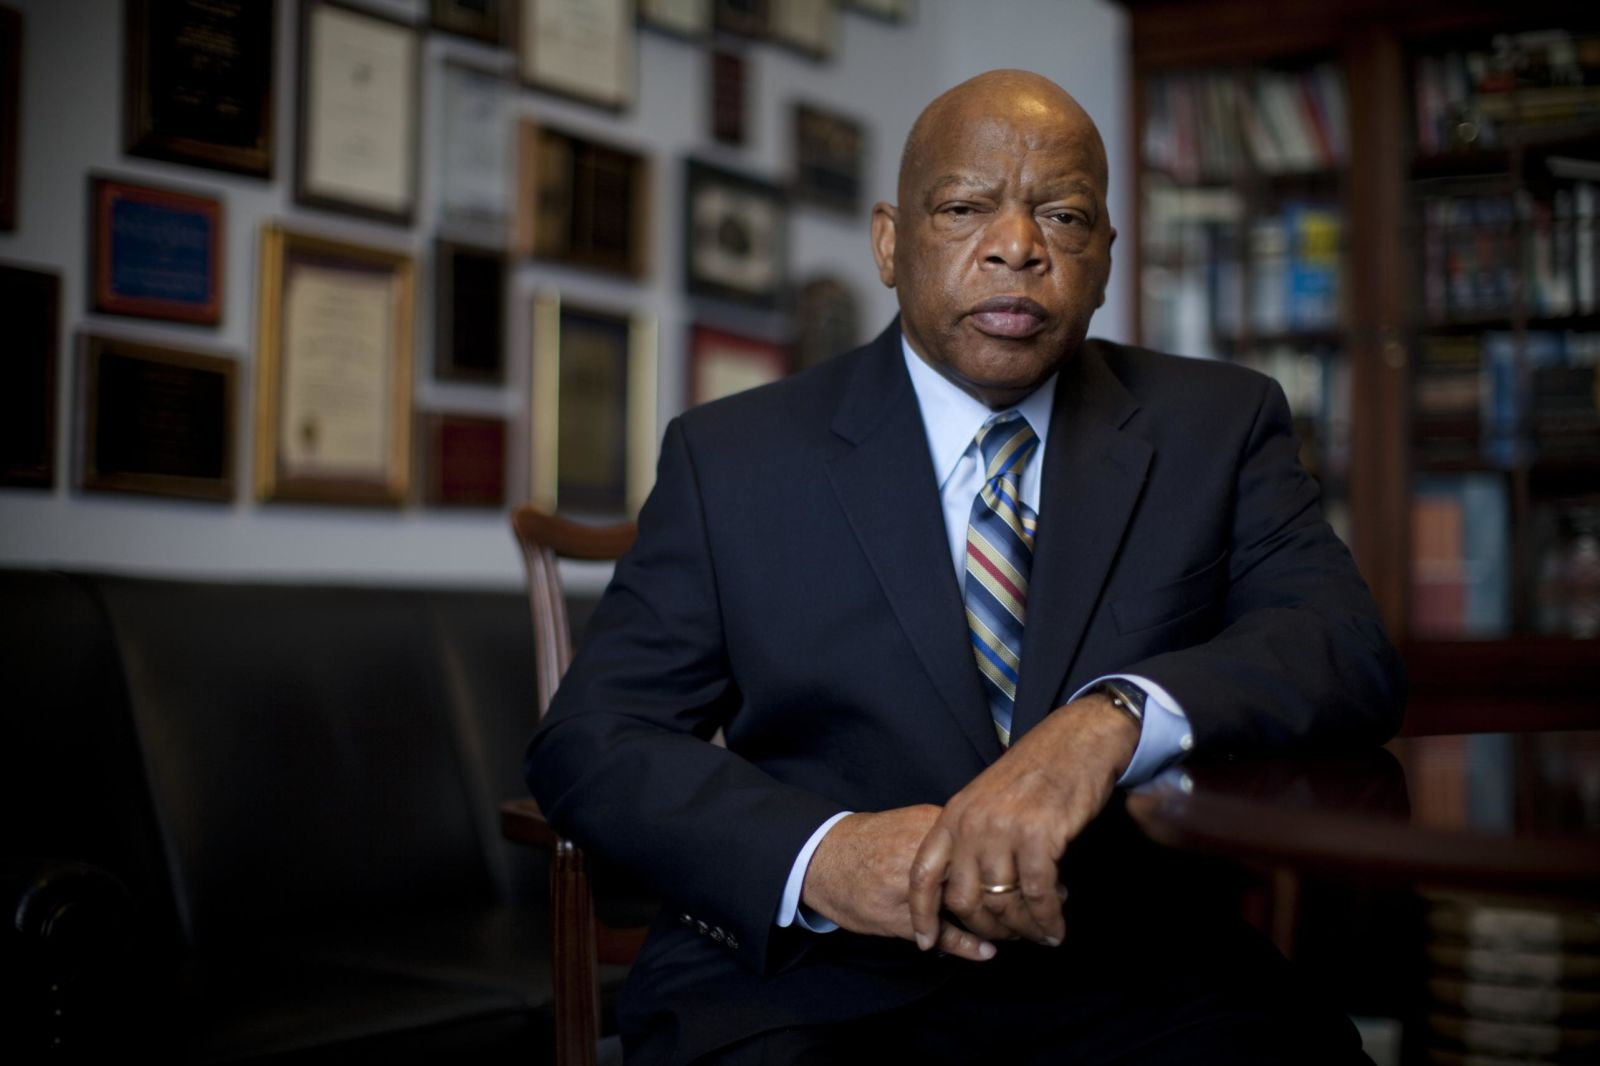 John Lewis' life in pictures